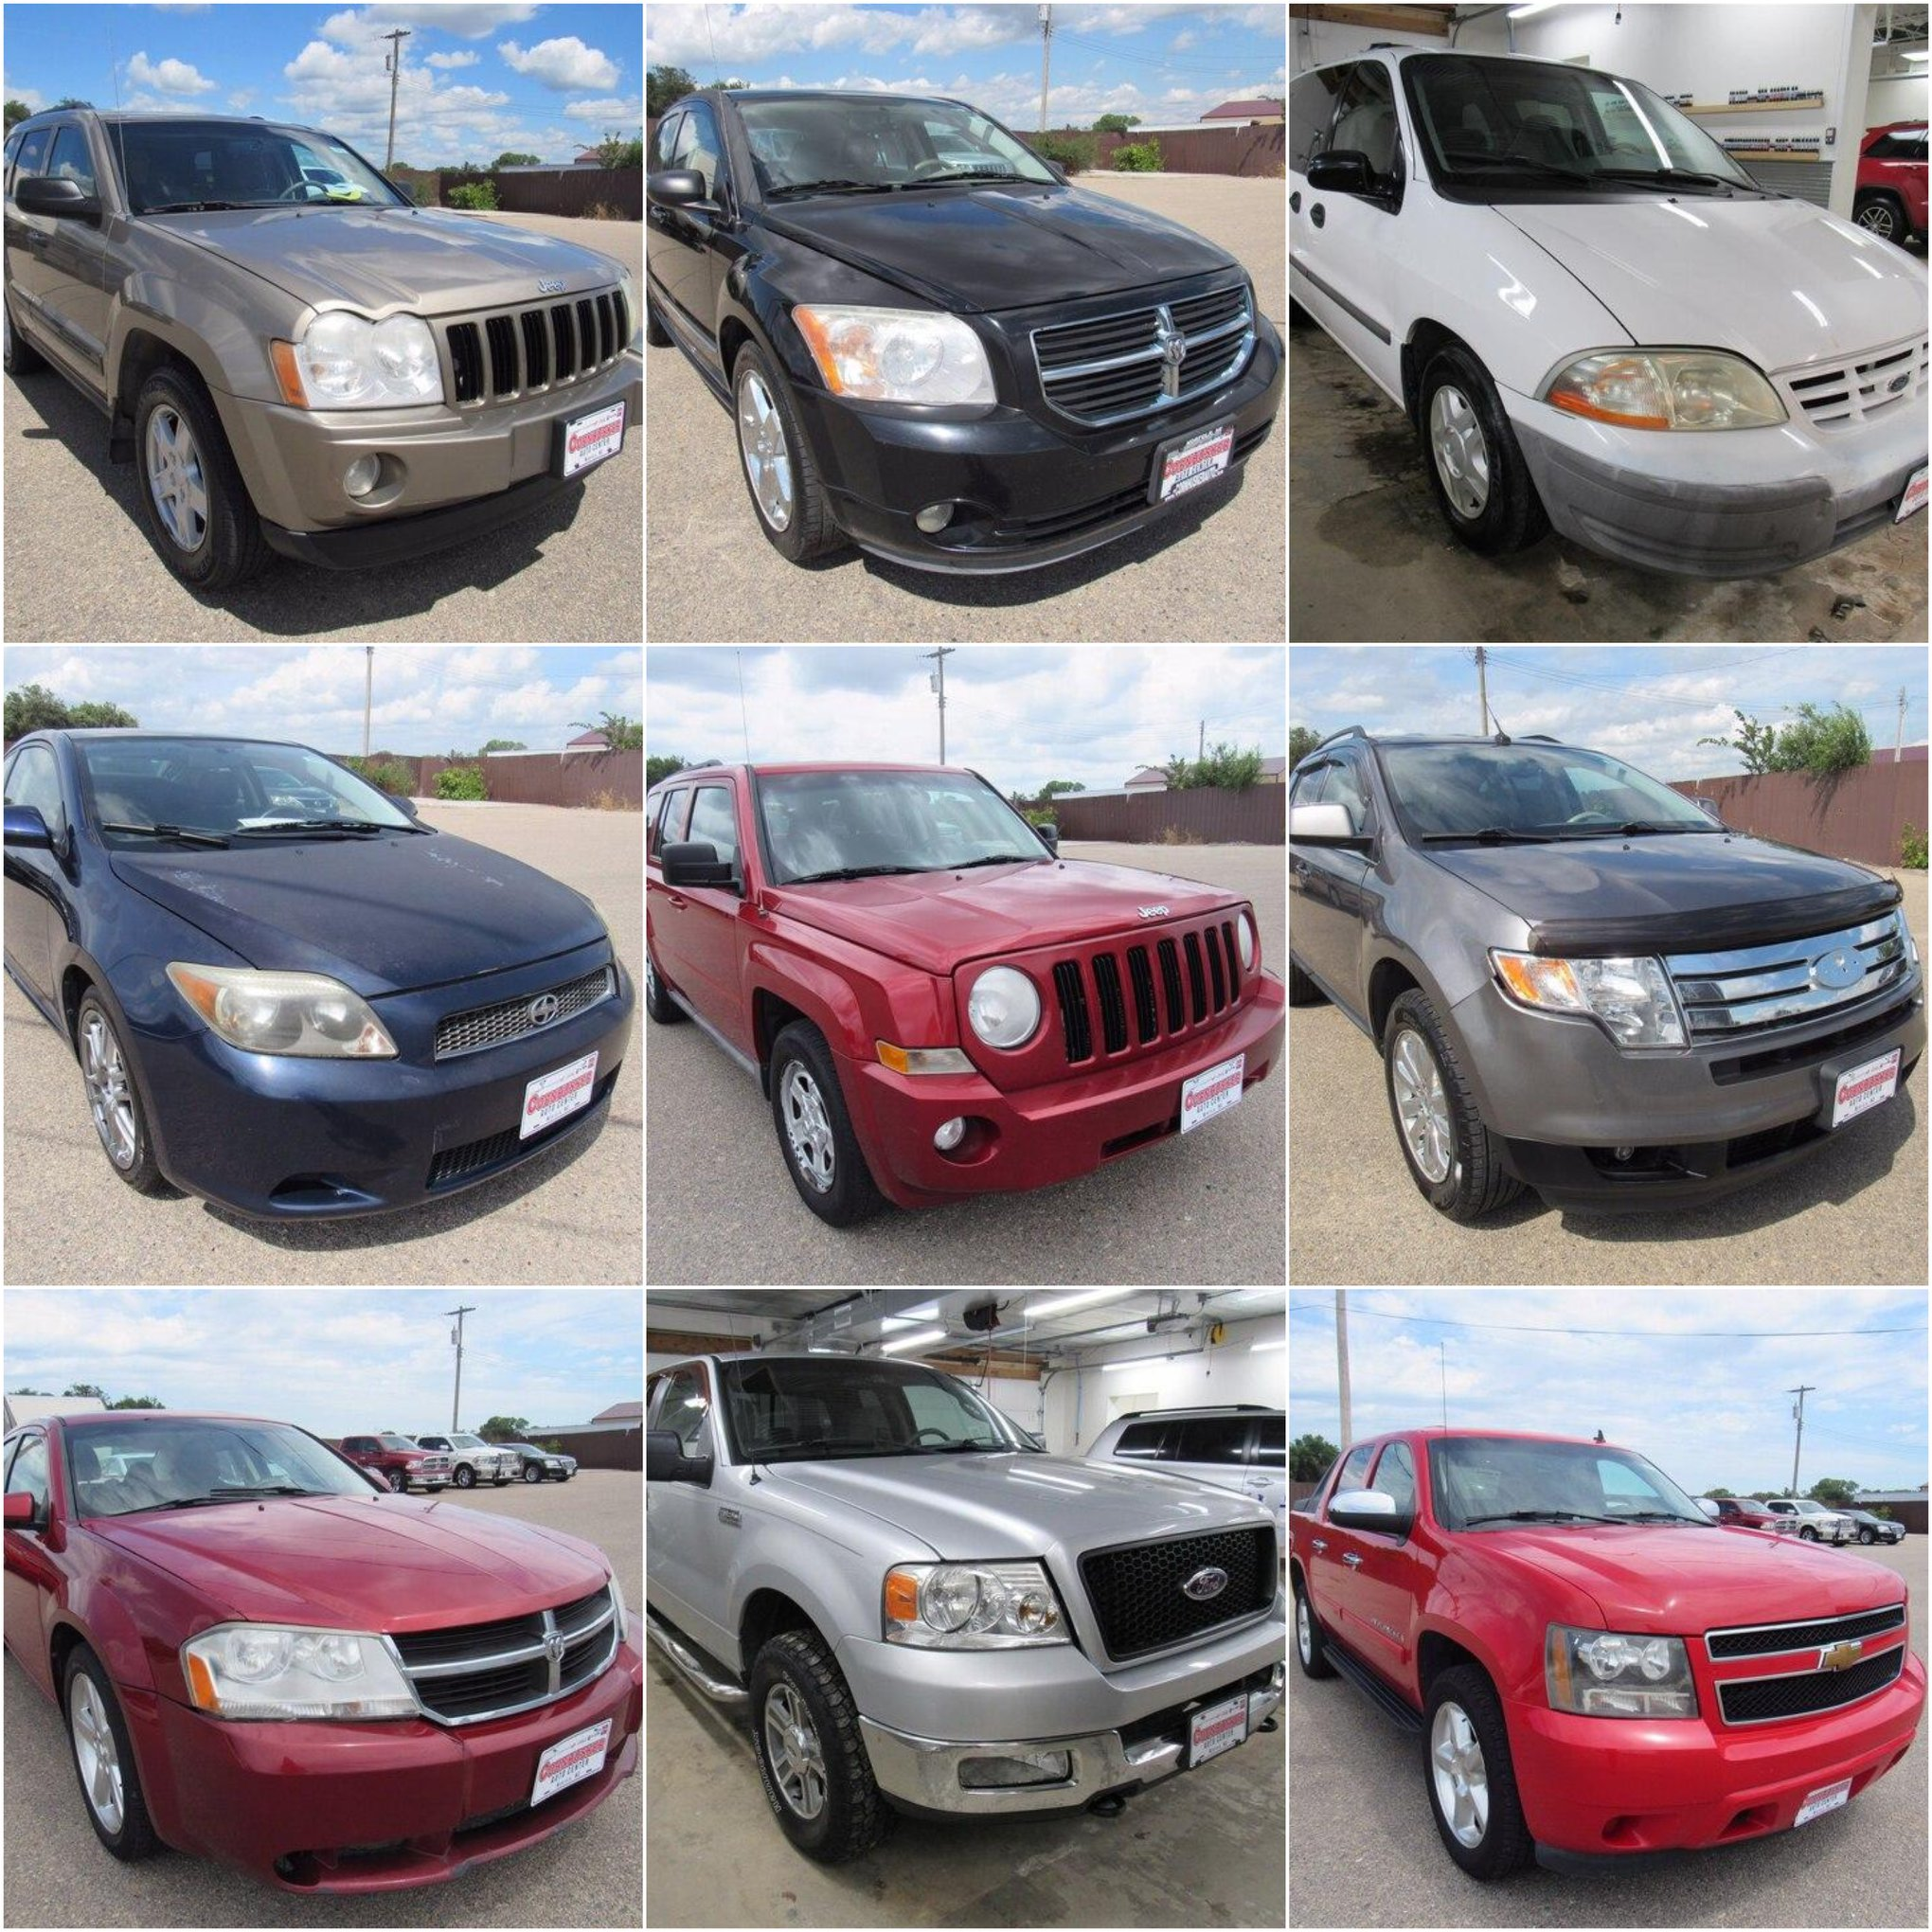 USED CARS UNDER $10,000